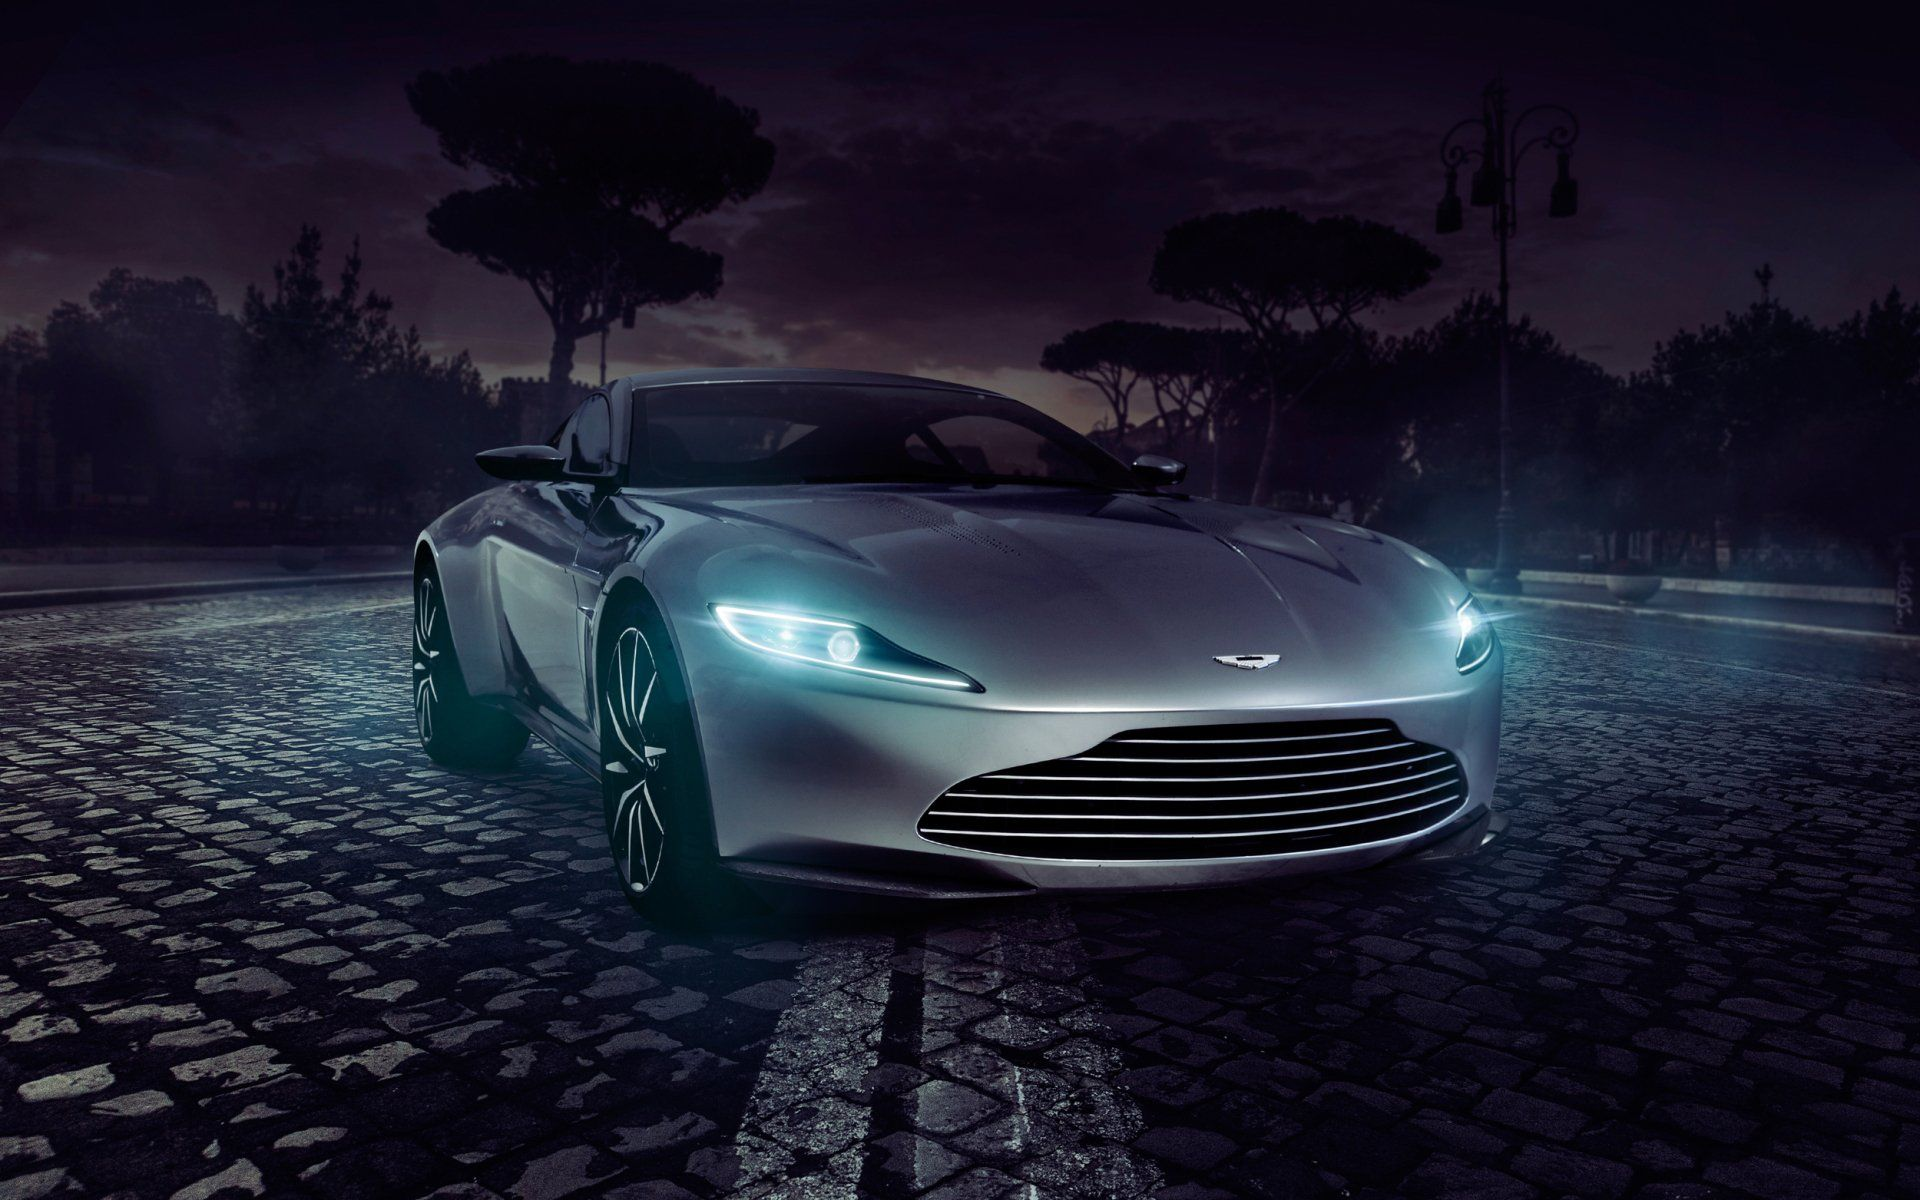 Aston Martin Db10 Wallpapers Top Free Aston Martin Db10 Backgrounds Wallpaperaccess